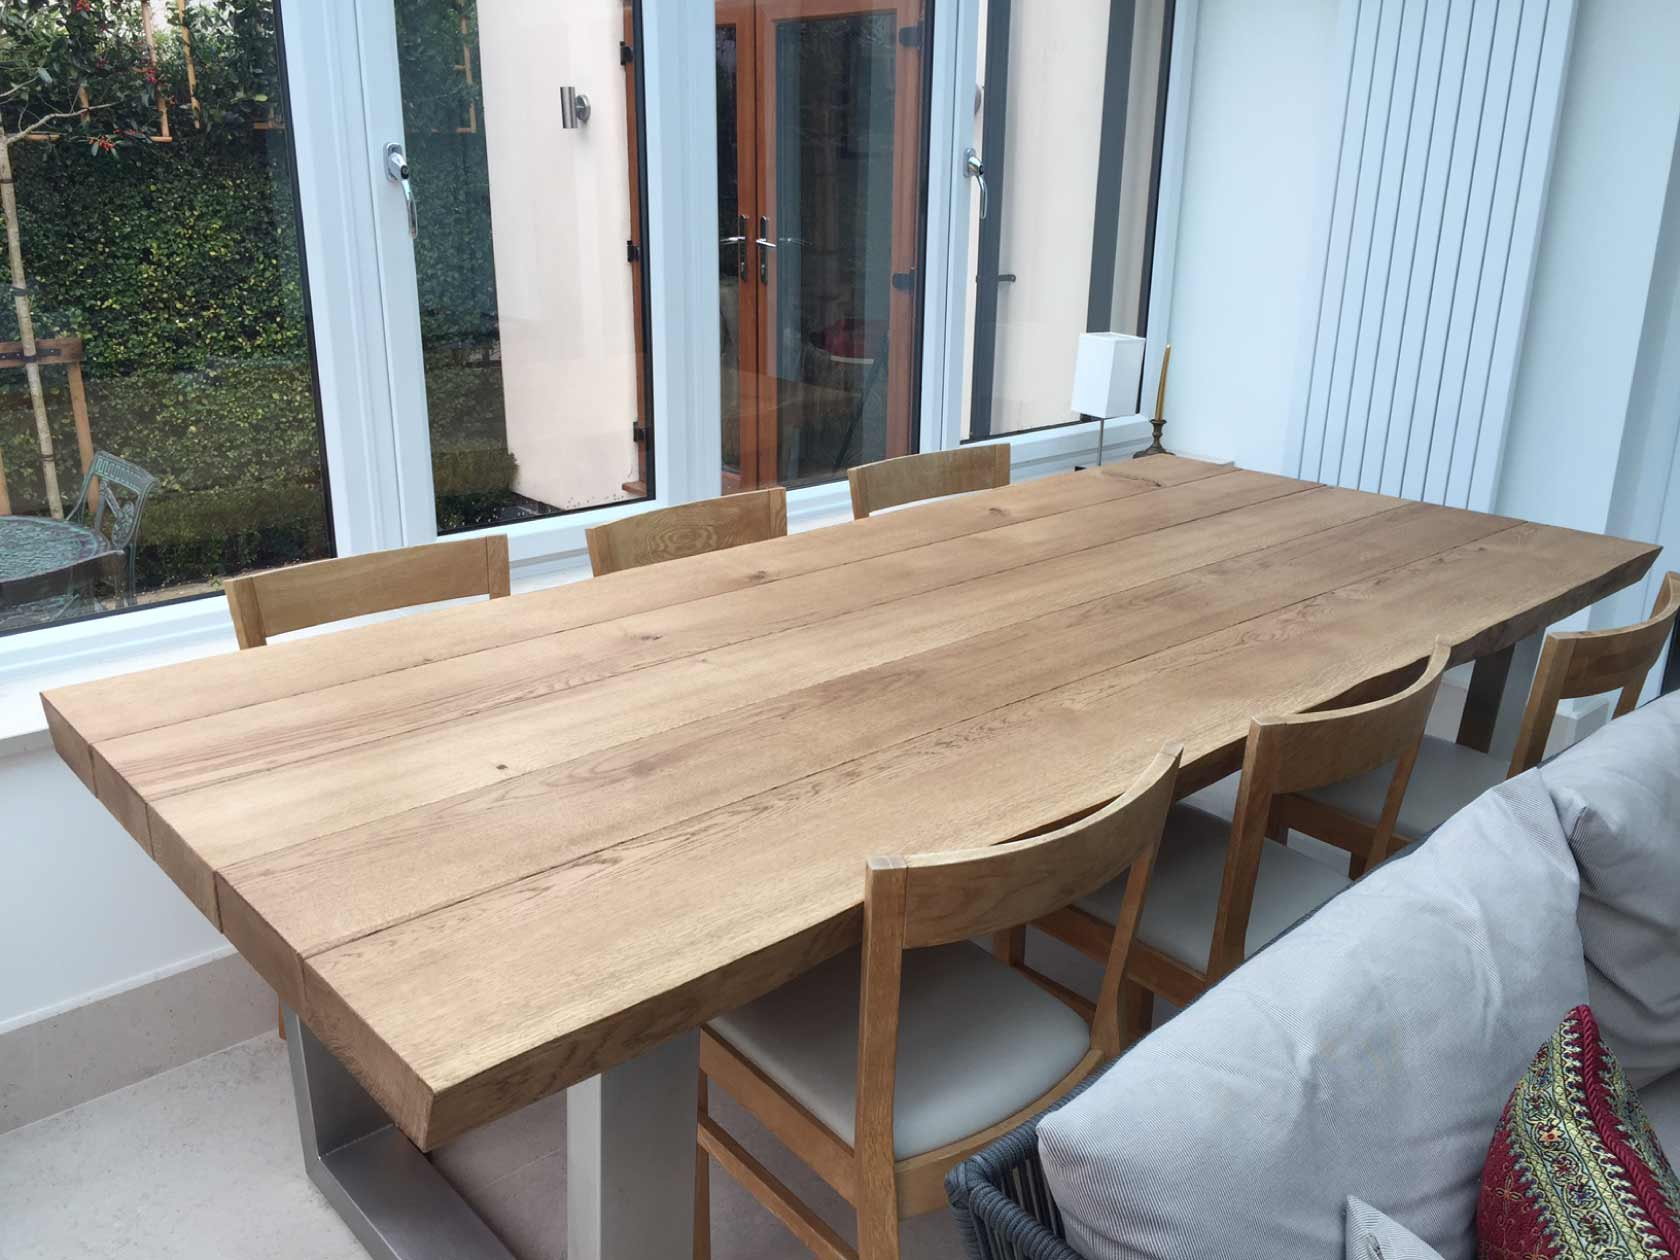 rustic-oak-dining-table-from-abacus-tables-2.4-x-1.1-komodo-project-296